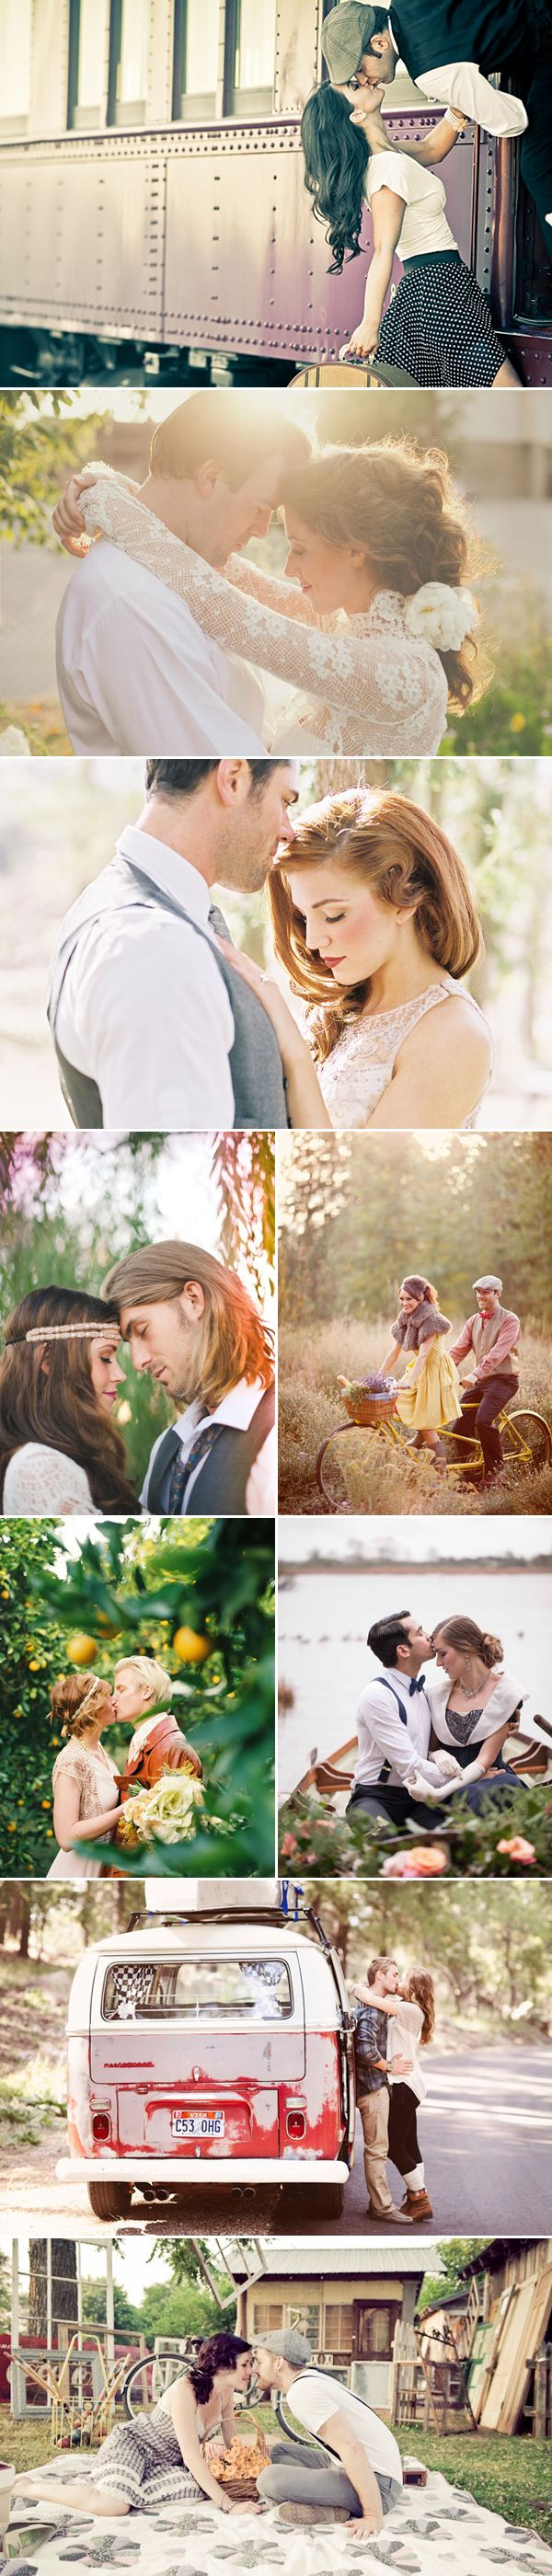 A vintage-inspired theme can add a fun and elegant twist to any wedding and reception. If you are considering to add a vintage touch to your wedding but don't know where to start, your engagement photo session is a good place to give it a try. A vintage theme allows couples to imbue the celebration …                                                                                                                                                                                 More